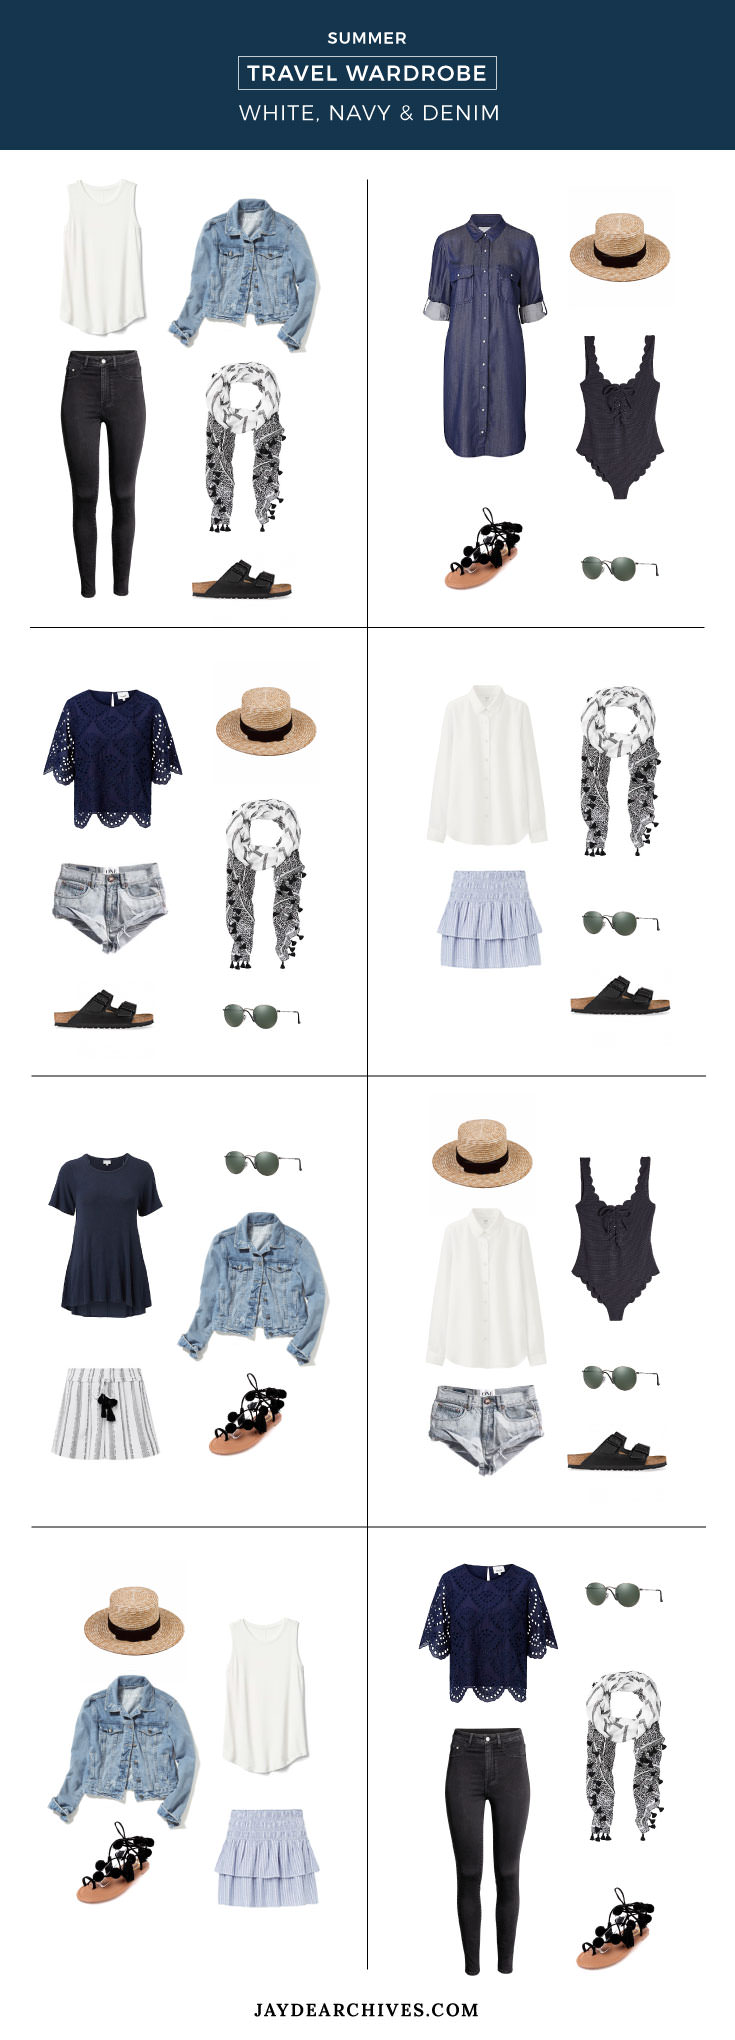 Summer Travel Wardrobe: White, Navy & Denim